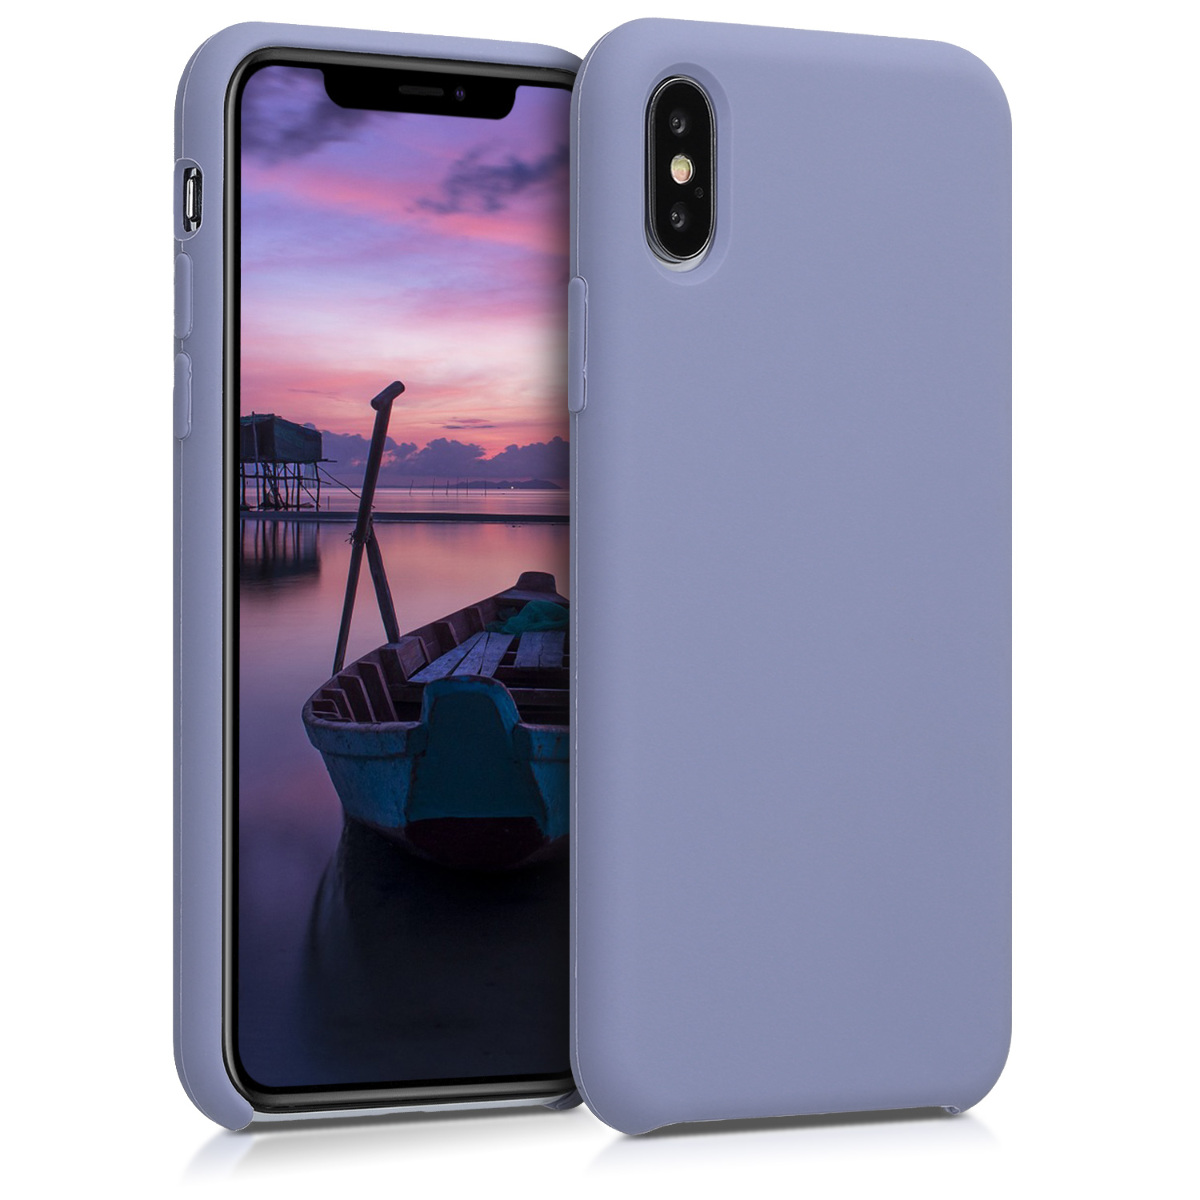 KW TPU Θήκη Σιλικόνης Apple iPhone XS - Soft Flexible Rubber Protective Cover - Lavender Grey (46313.130)